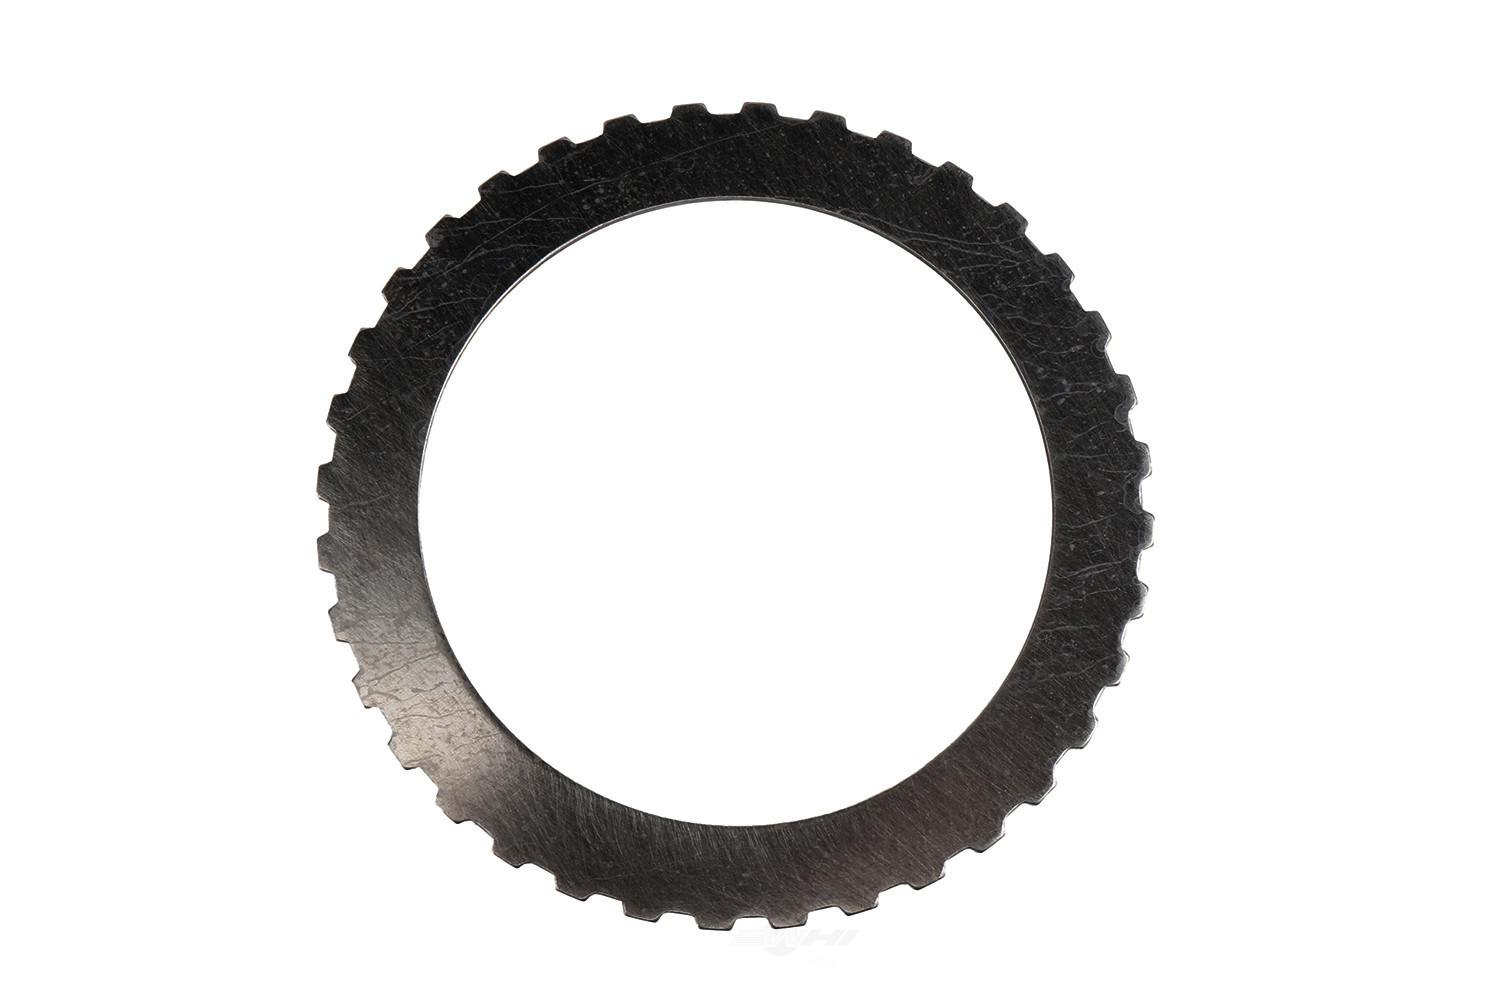 ACDELCO GM ORIGINAL EQUIPMENT - Transmission Clutch Friction Plate - DCB 24258070